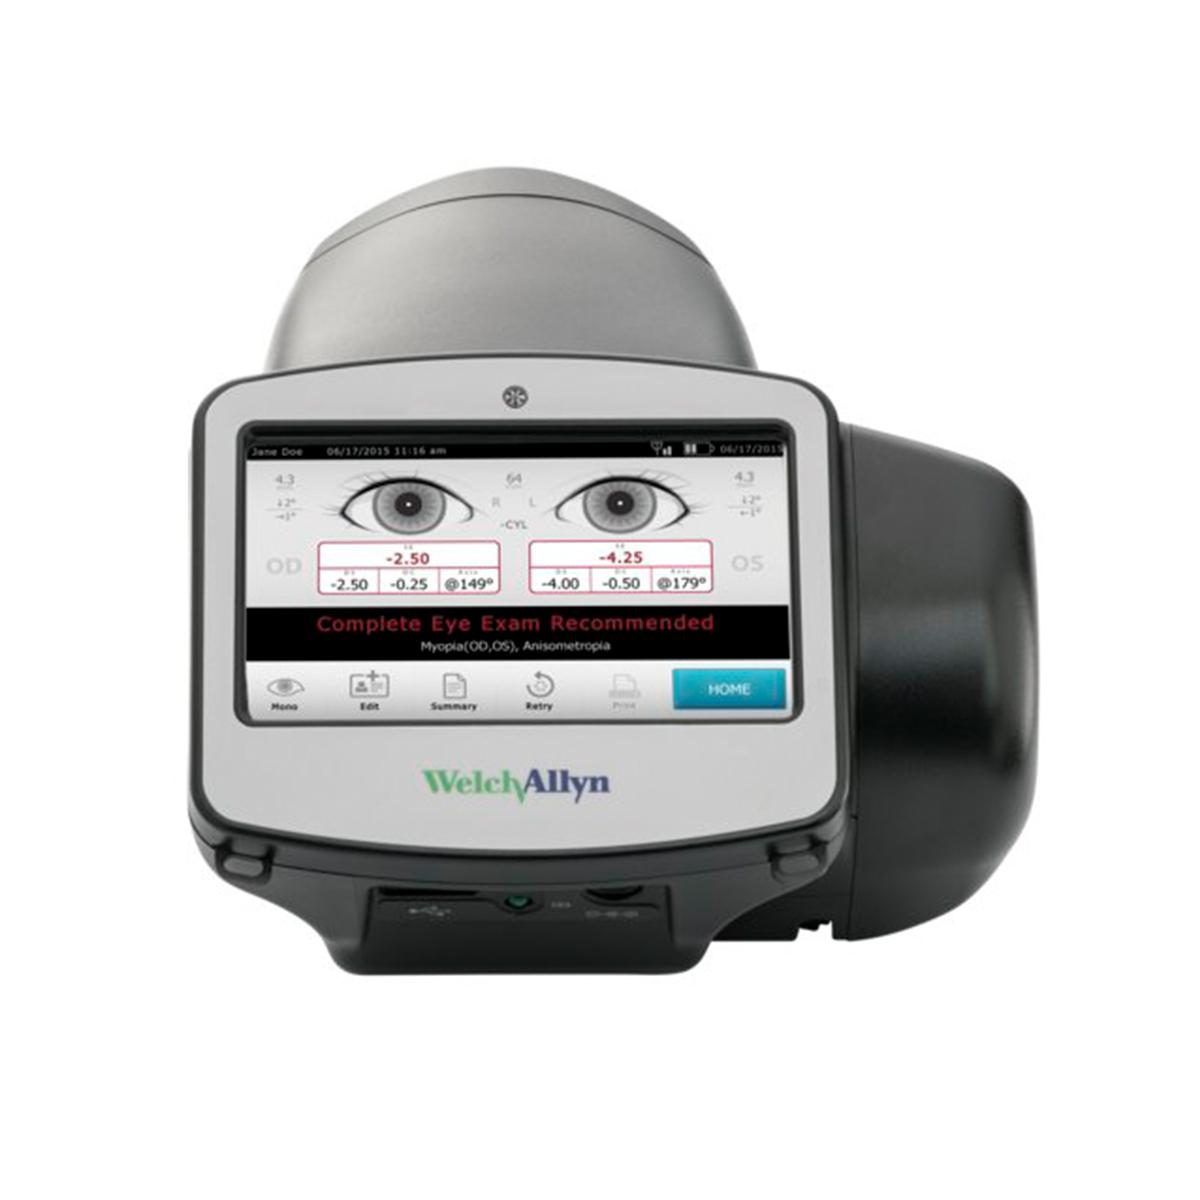 Spot Vision Screener, straight on view with screen visible